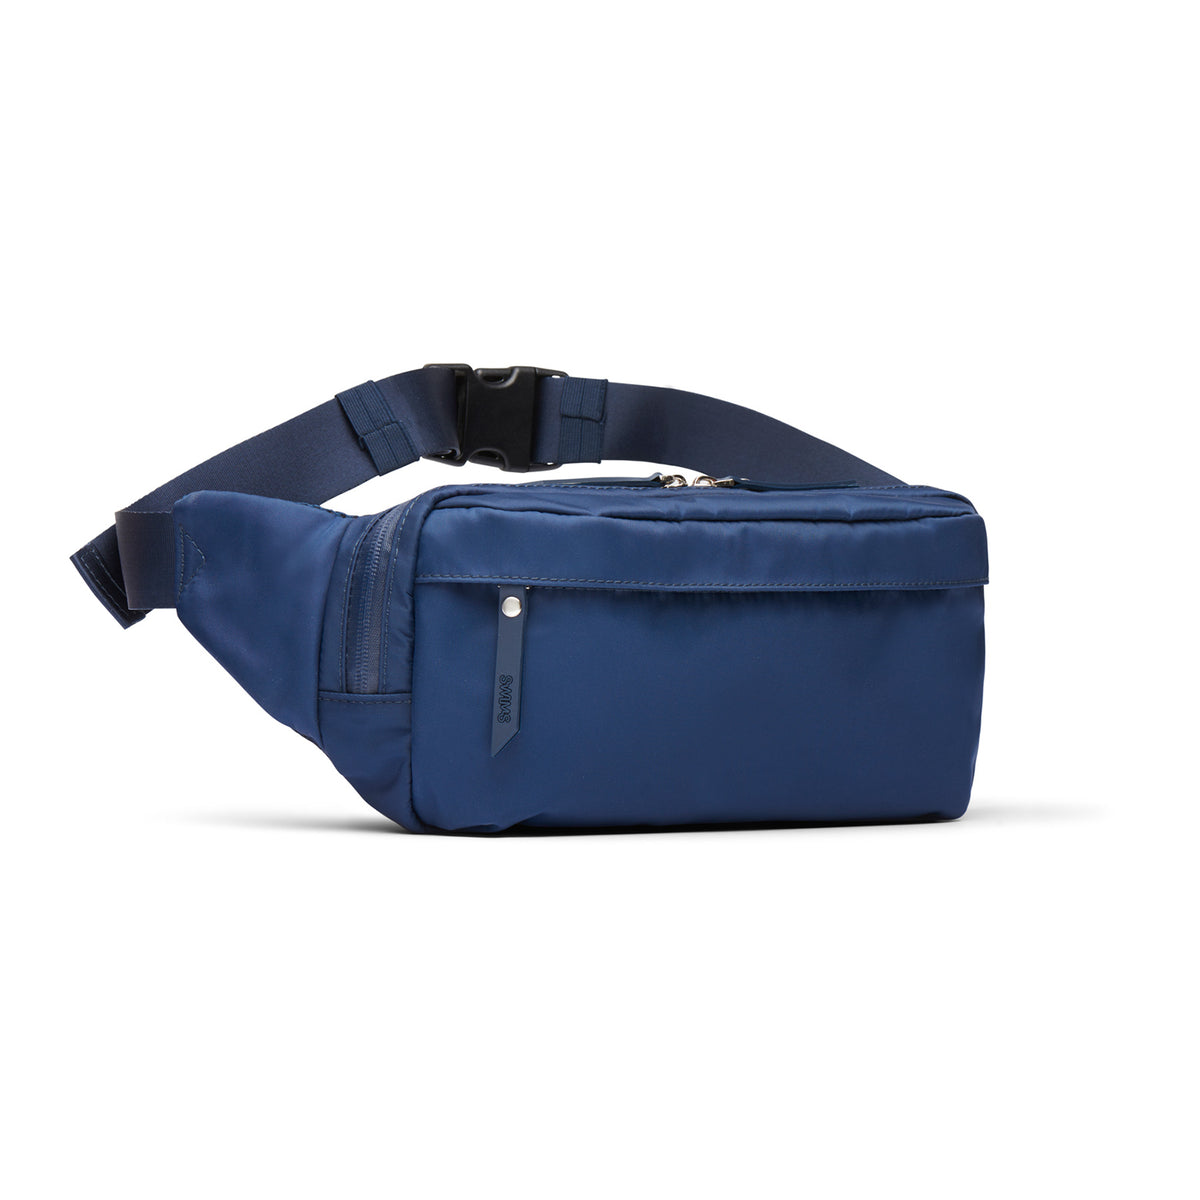 Belt Bag - background::white,variant::Navy